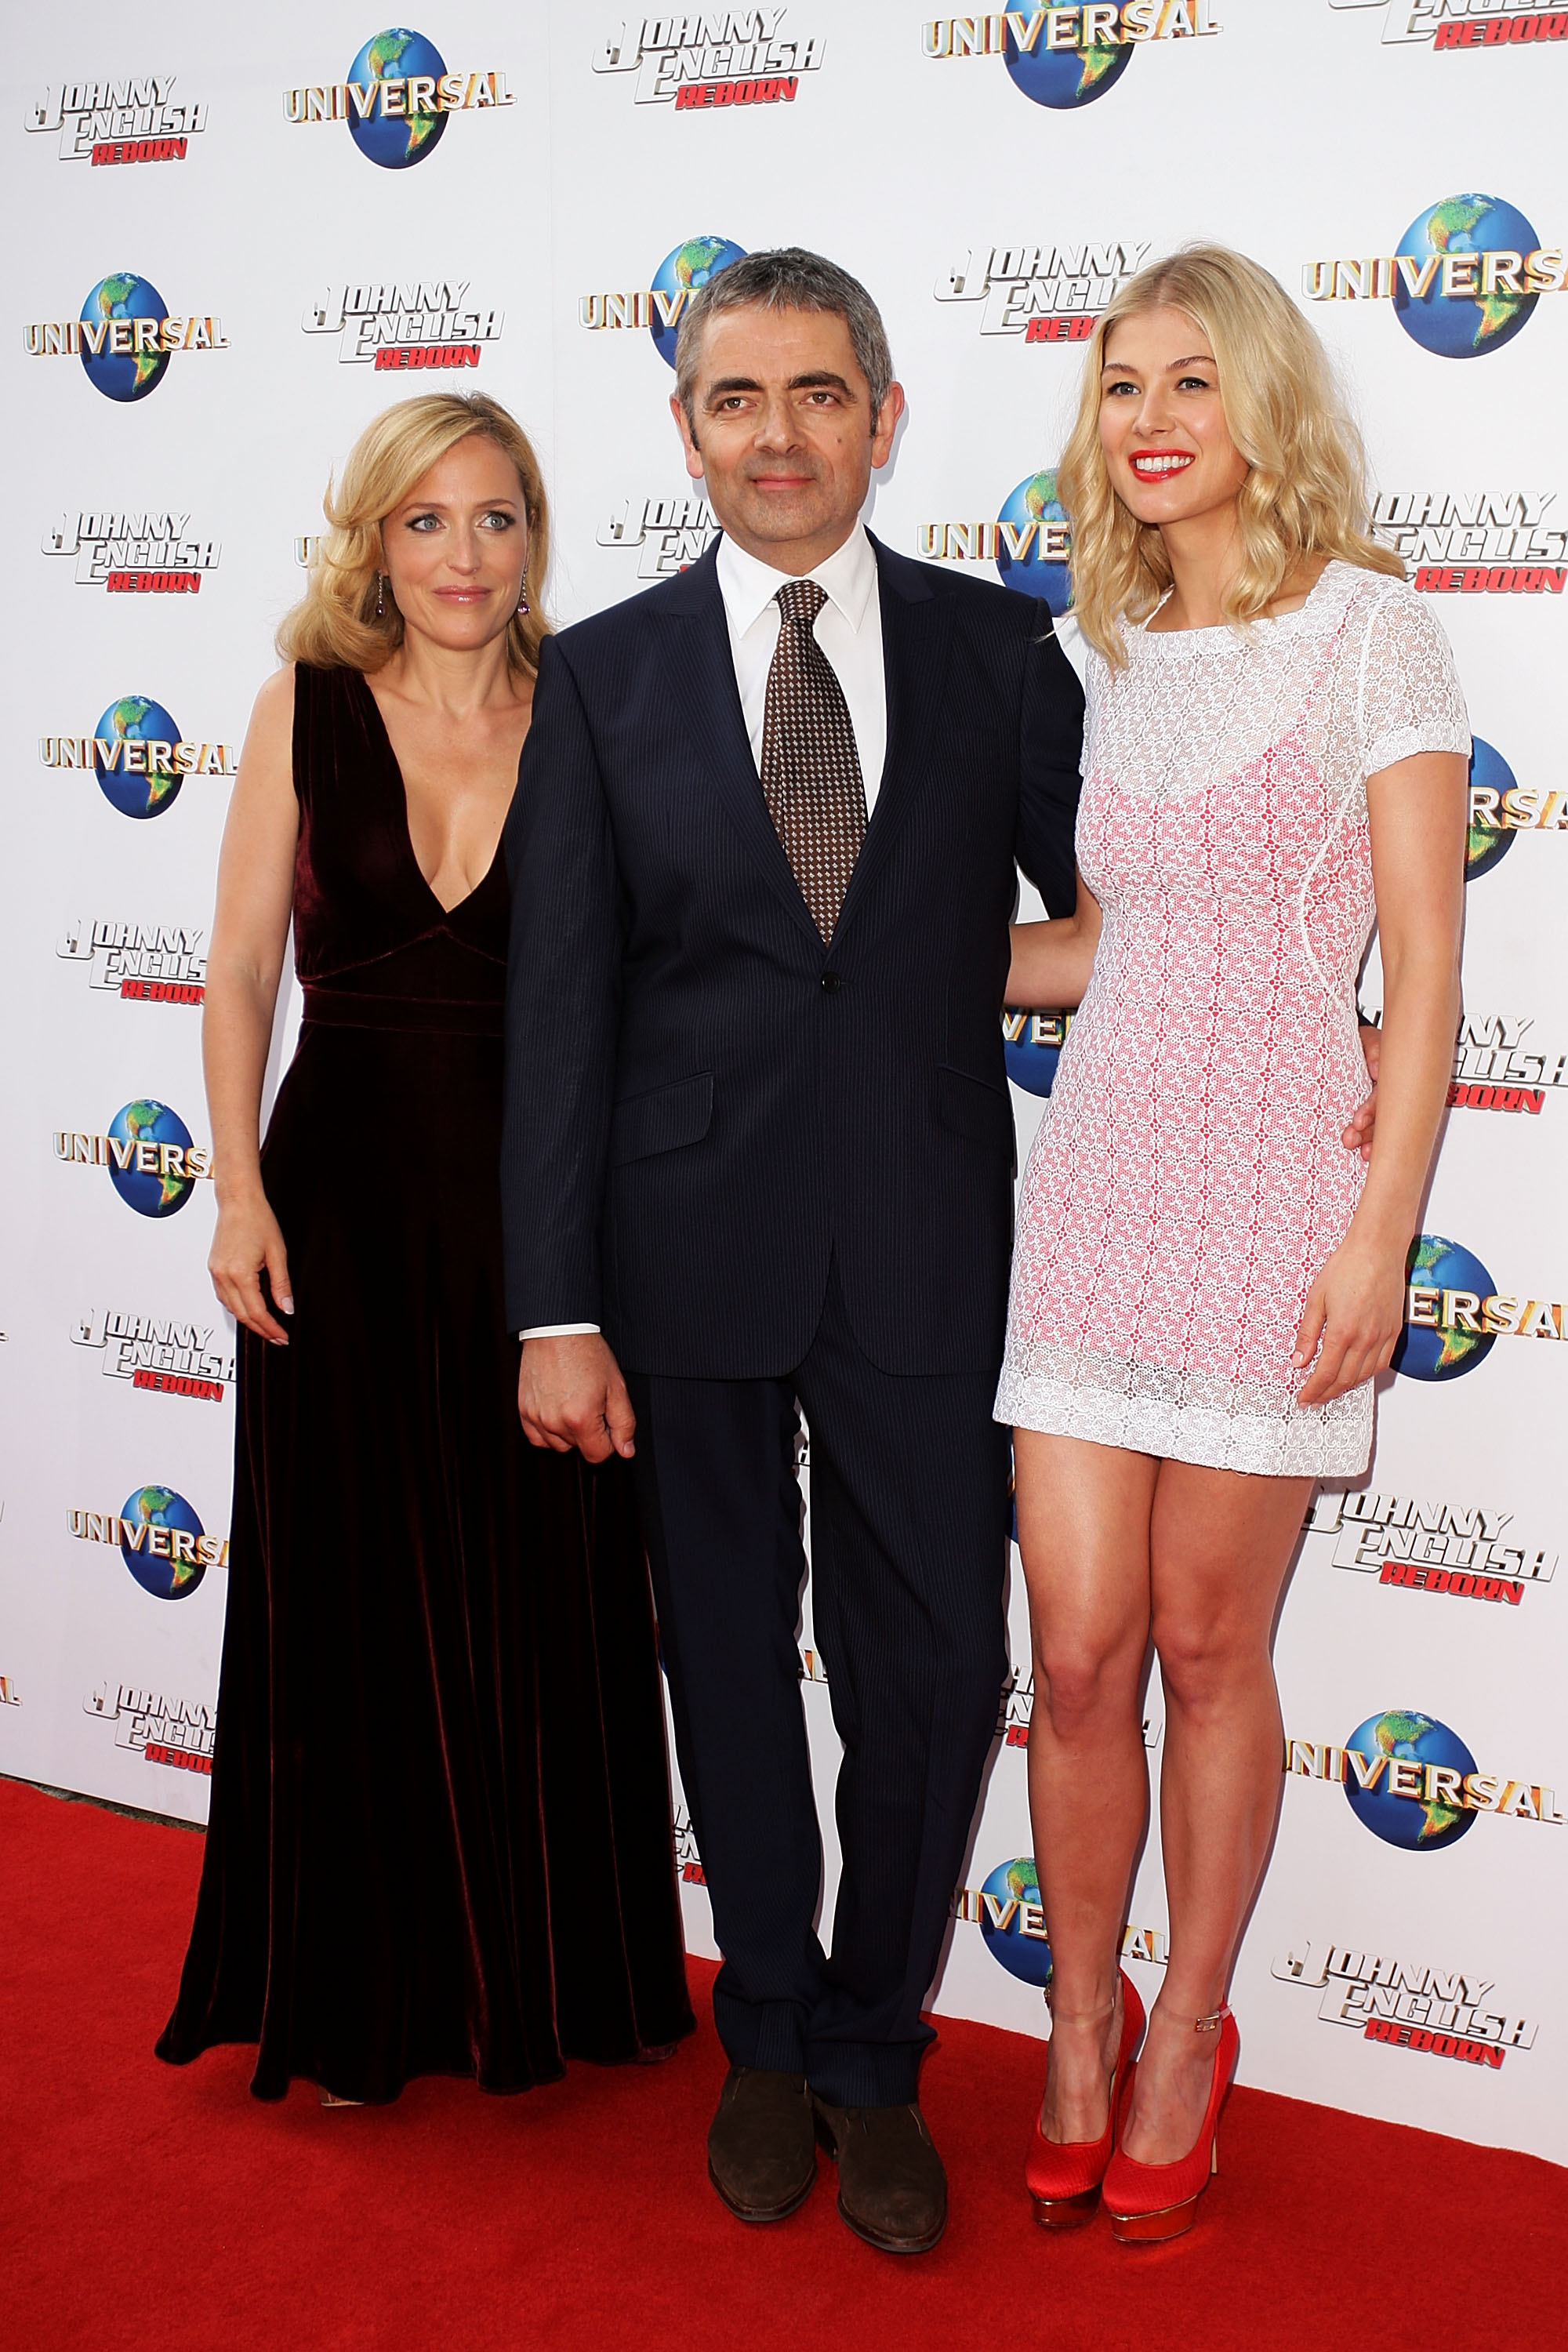 Gillian Anderson, Rowan Atkinson and Rosamund Pike